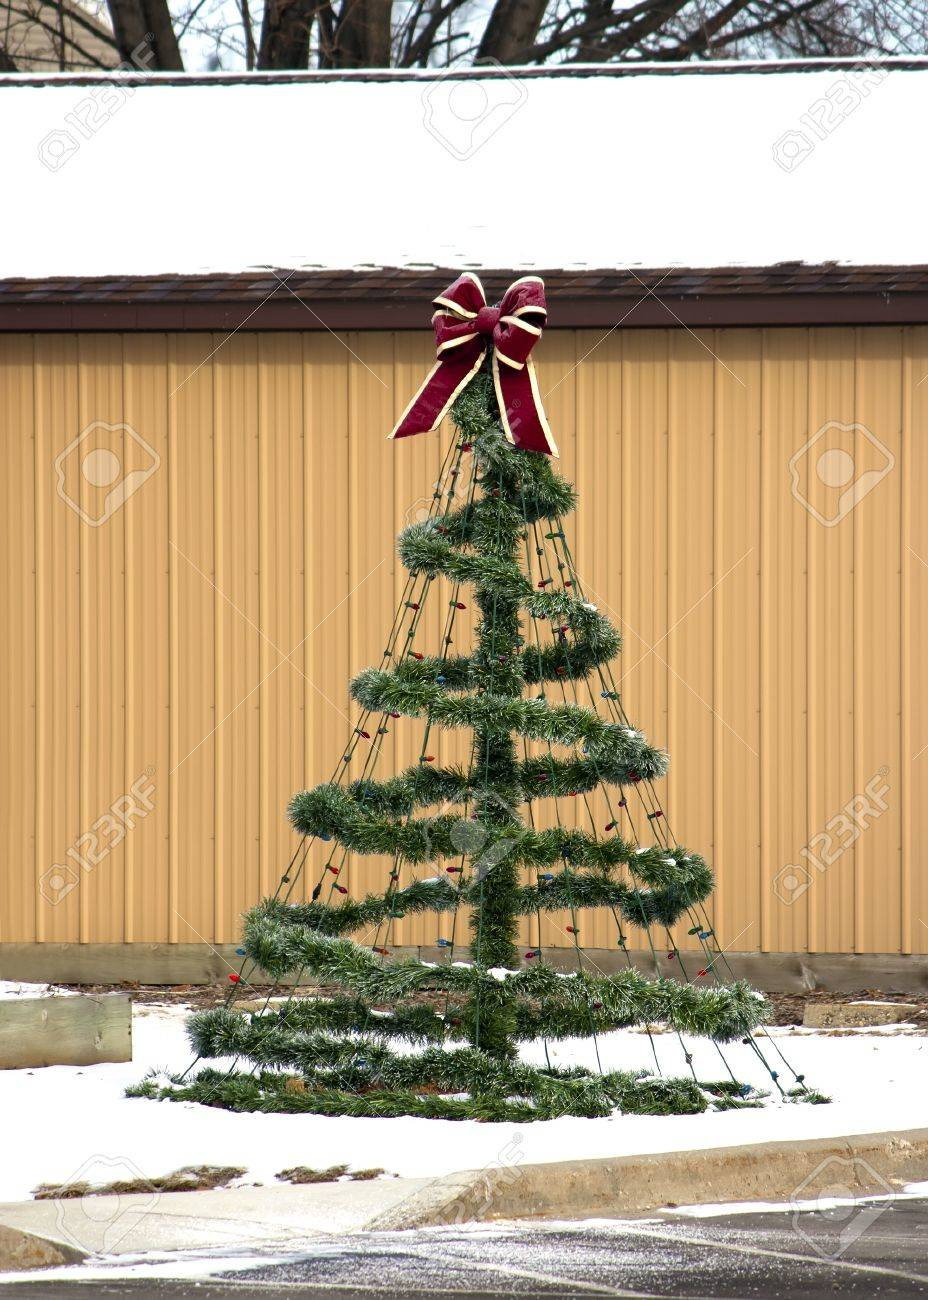 A Decorative Wire Frame Christmas Tree Stock Photo, Picture And ...